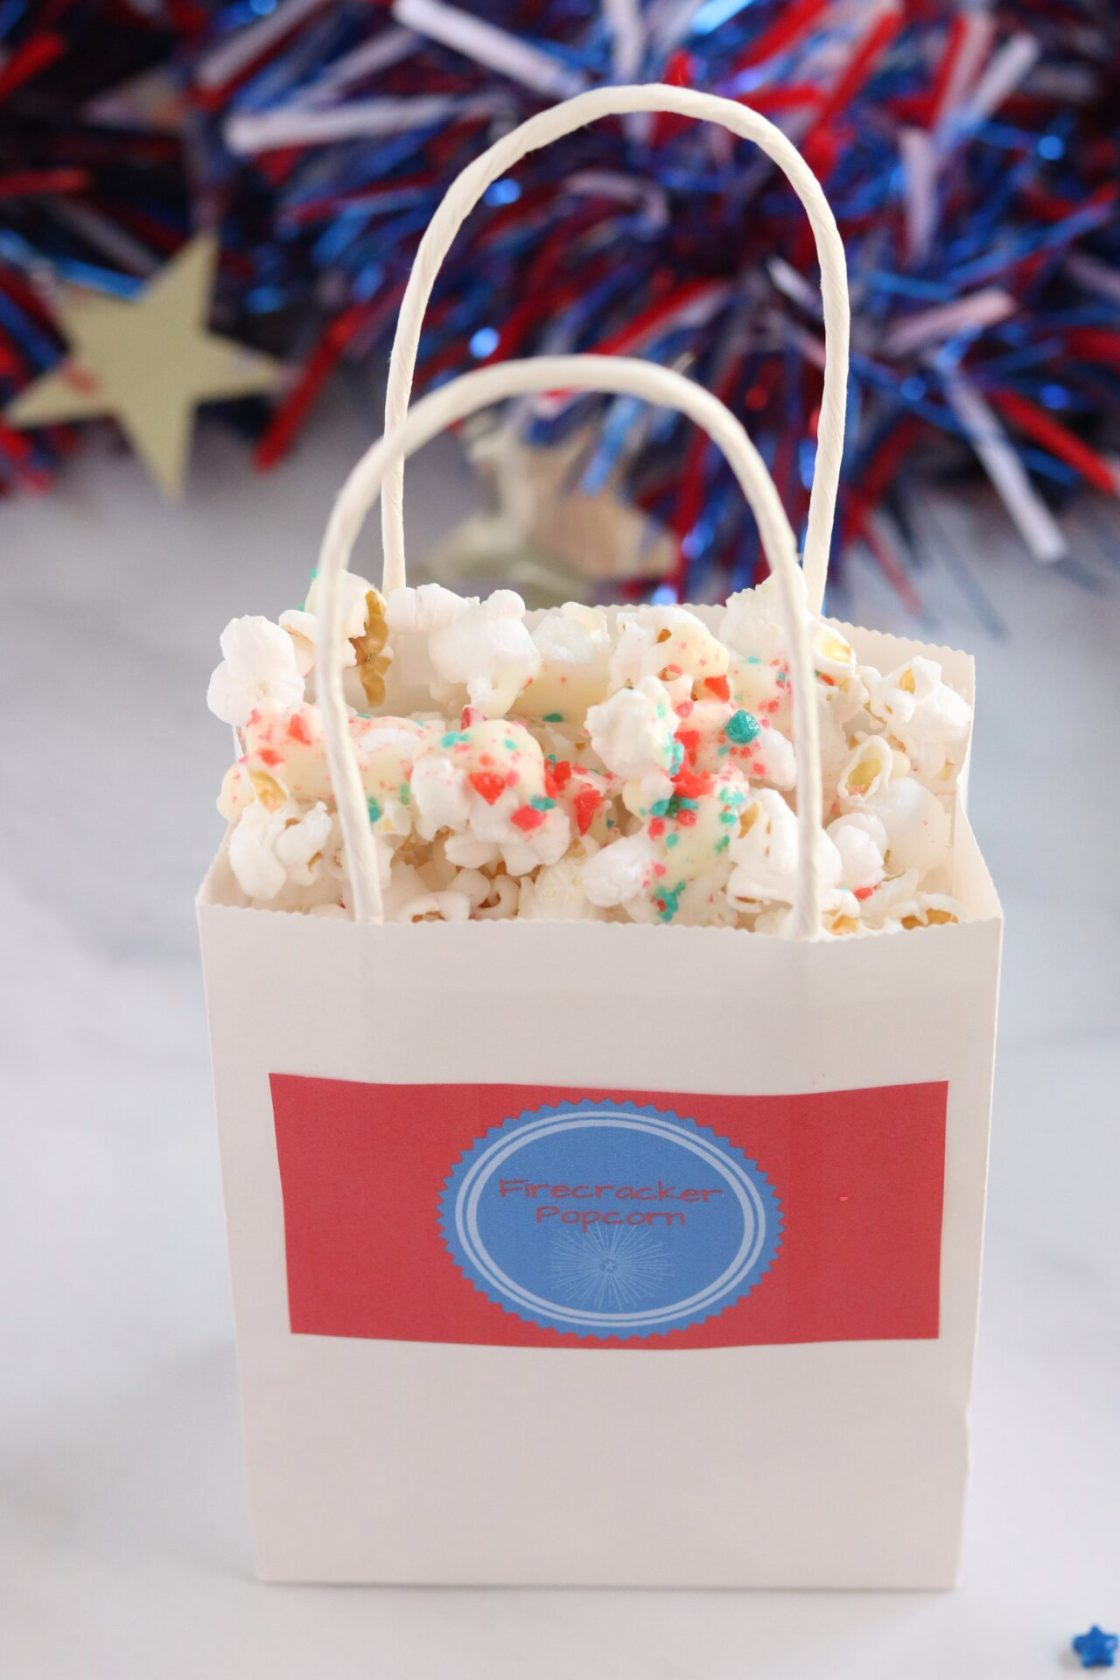 Looking for a tasty treat this Fourth of July? Well, look no further because Firecracker popcorn is the perfect treat no matter your Fourth of July plans!